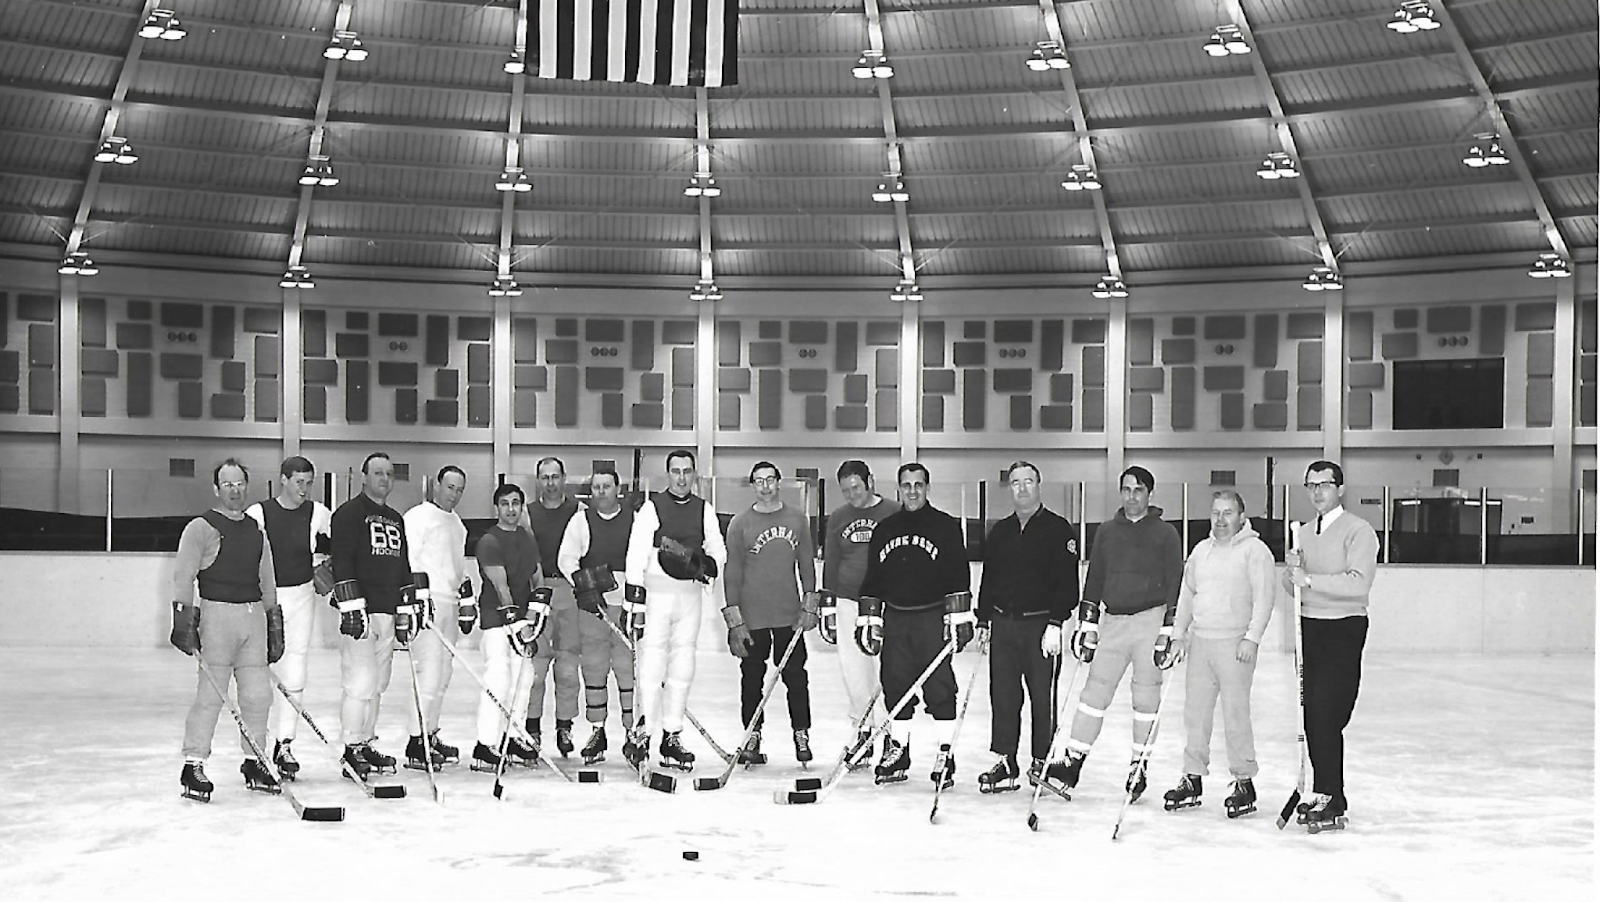 d4b507b8b45 Ara and Paul Shoults, another assistant football coach, are fifth and  fourth from the right, respectively. I don't remember any of the faculty  names.